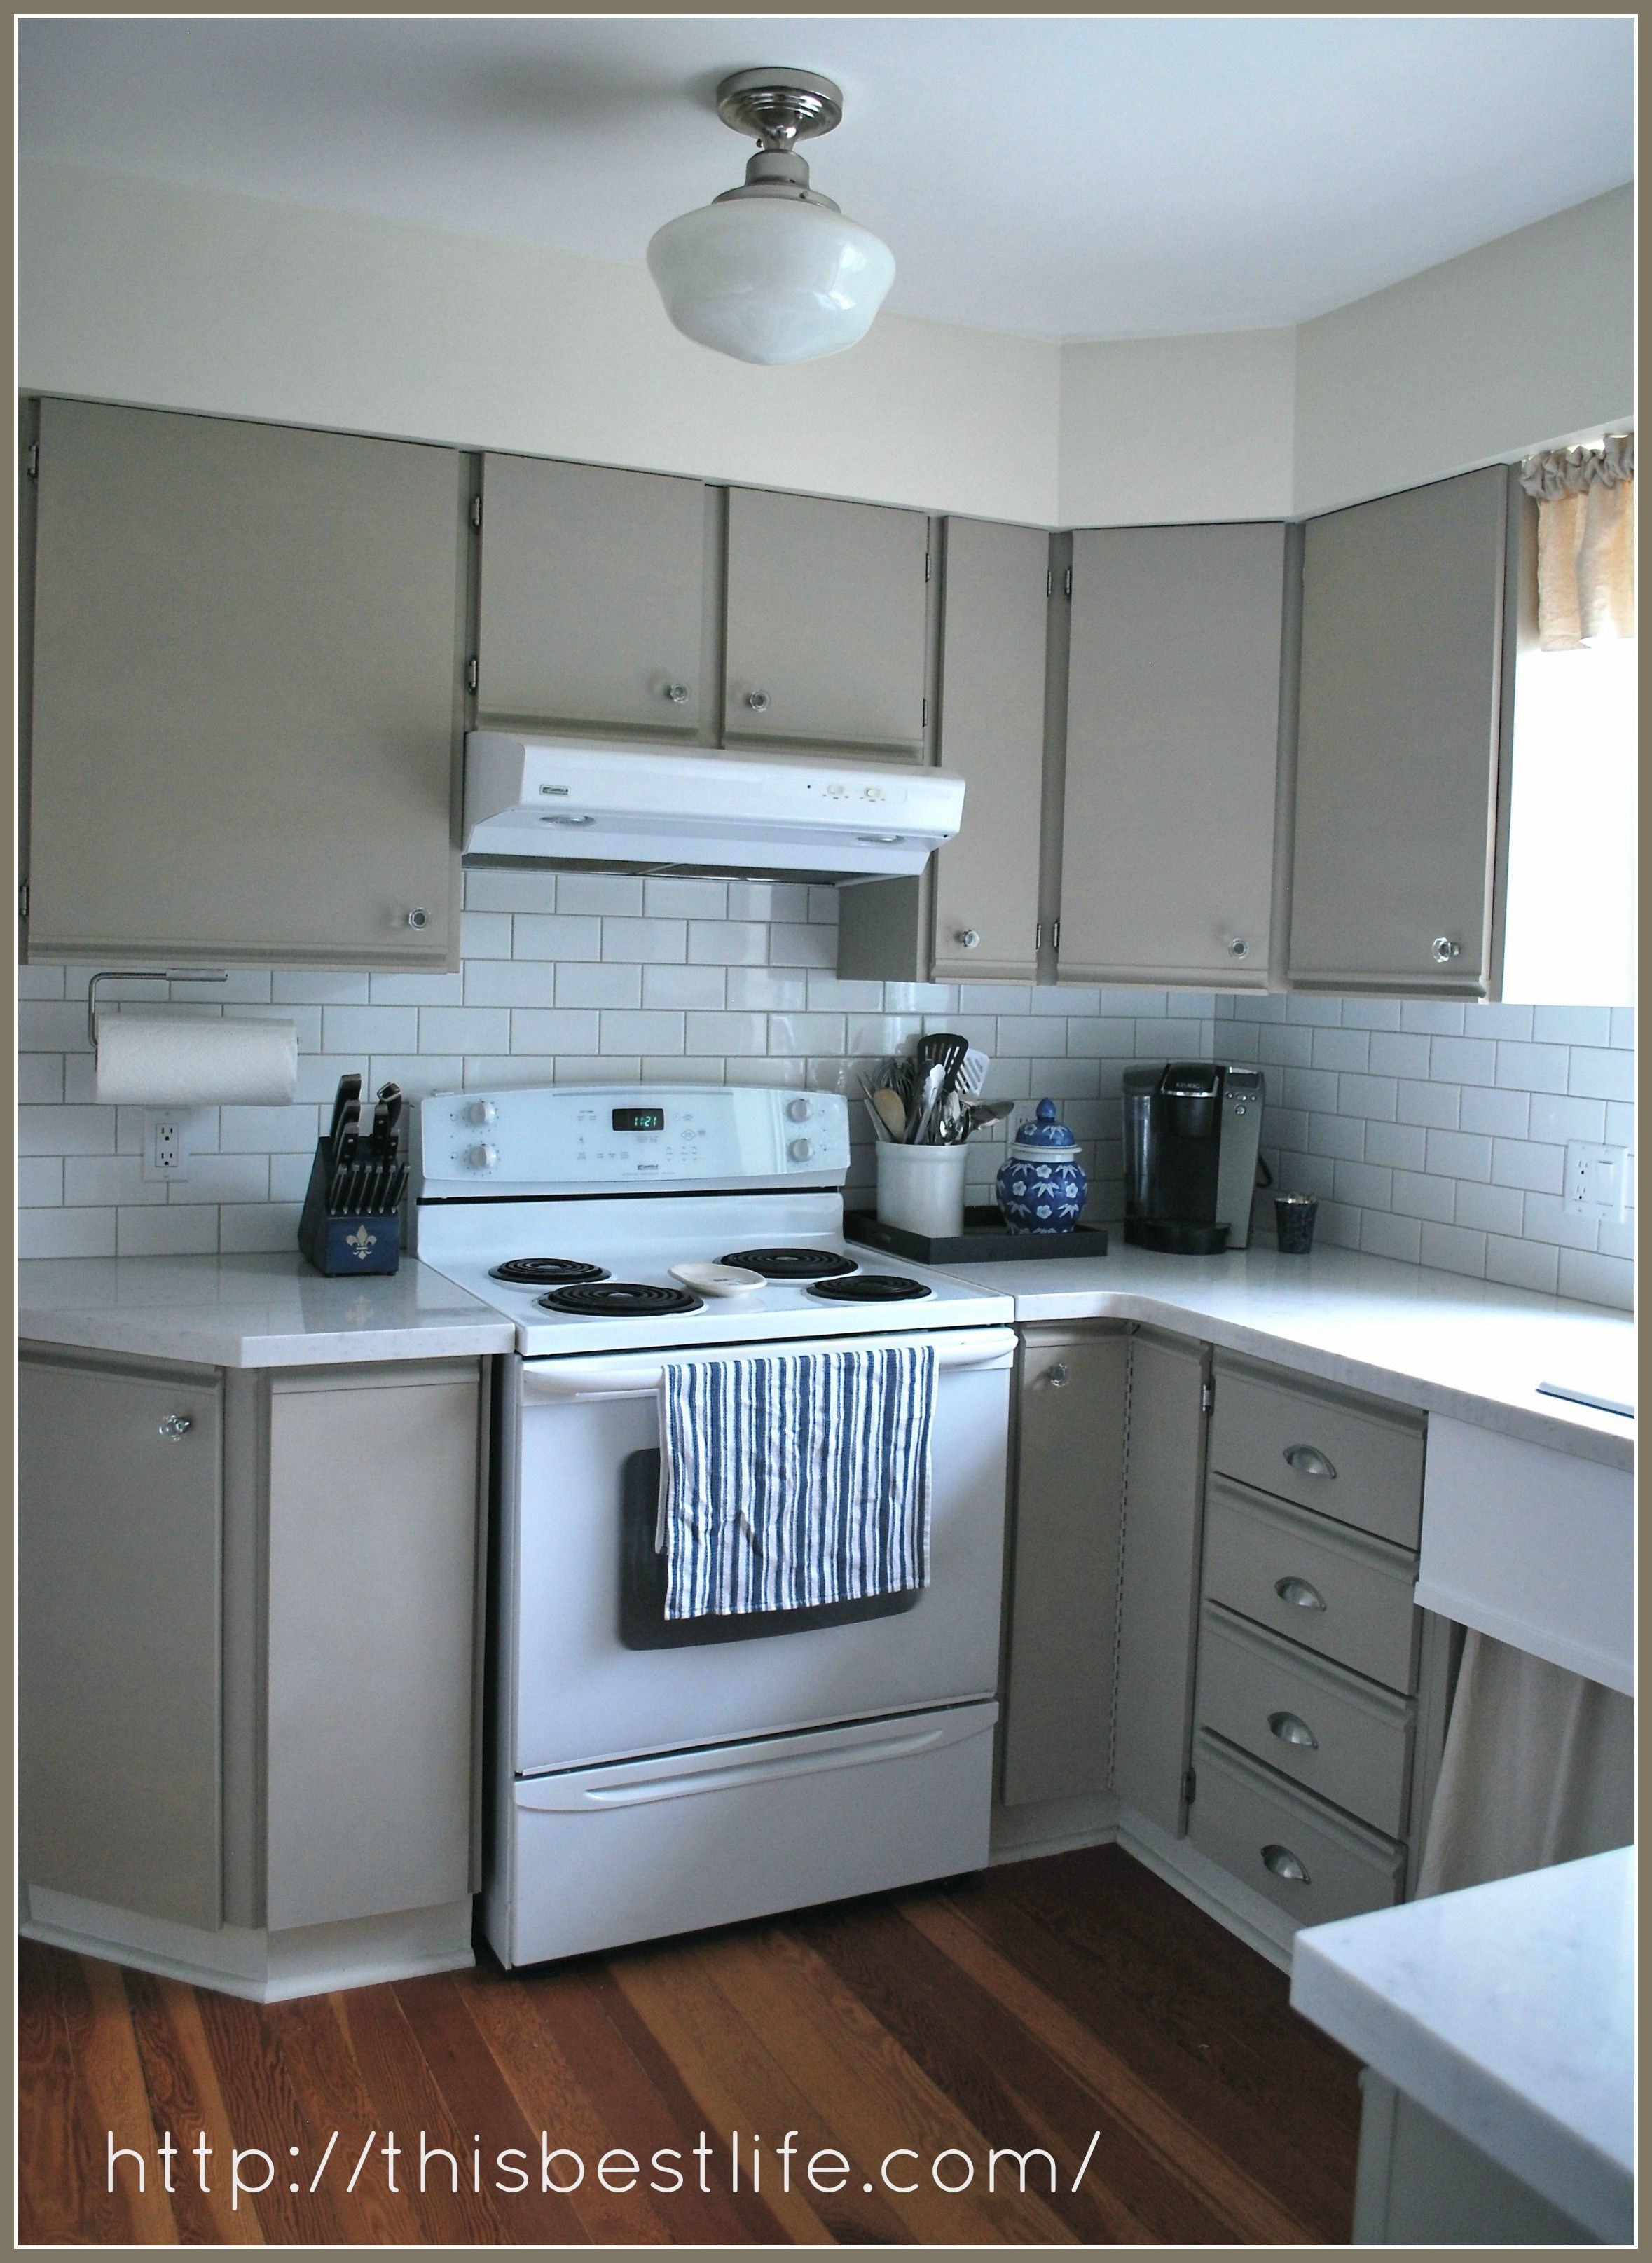 A French Touch Revamping And Repurposing Vintage Furniture And A Little Bit More Half Co New Kitchen Cabinets Kitchen Renovation Kitchen Design